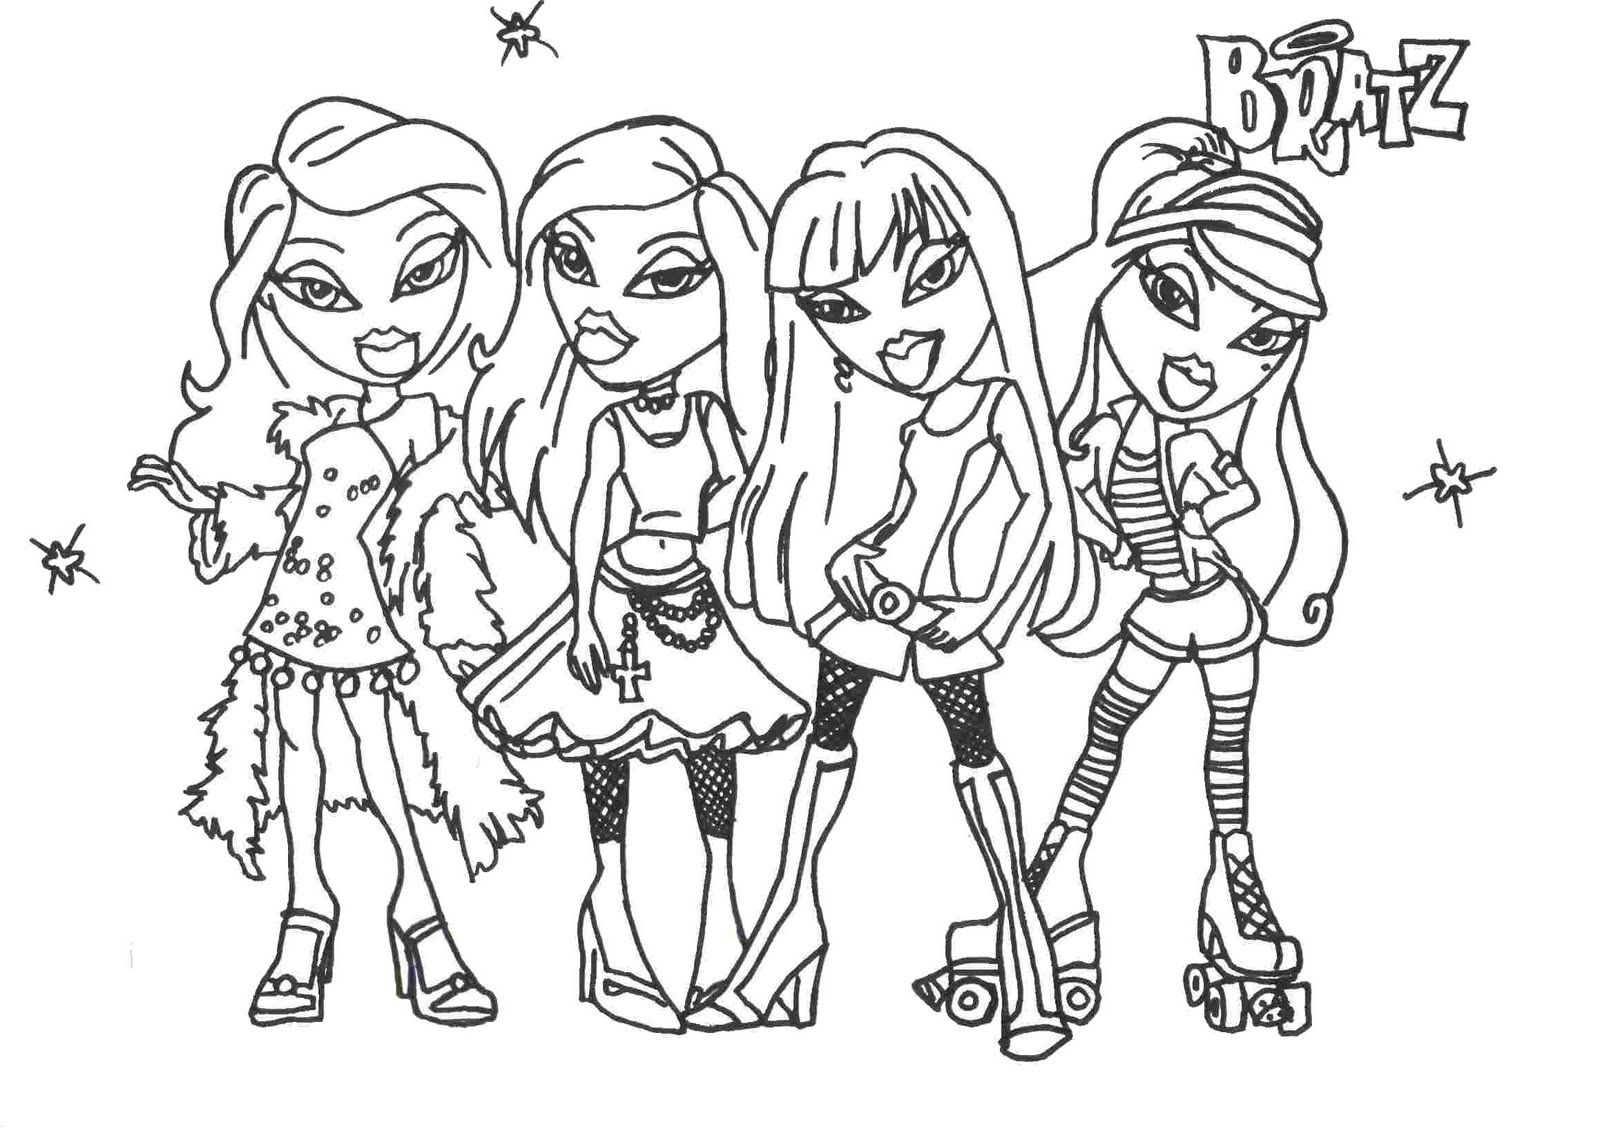 Coloring Pages For Girls 8 Coloring Kids | coloring_pages ...